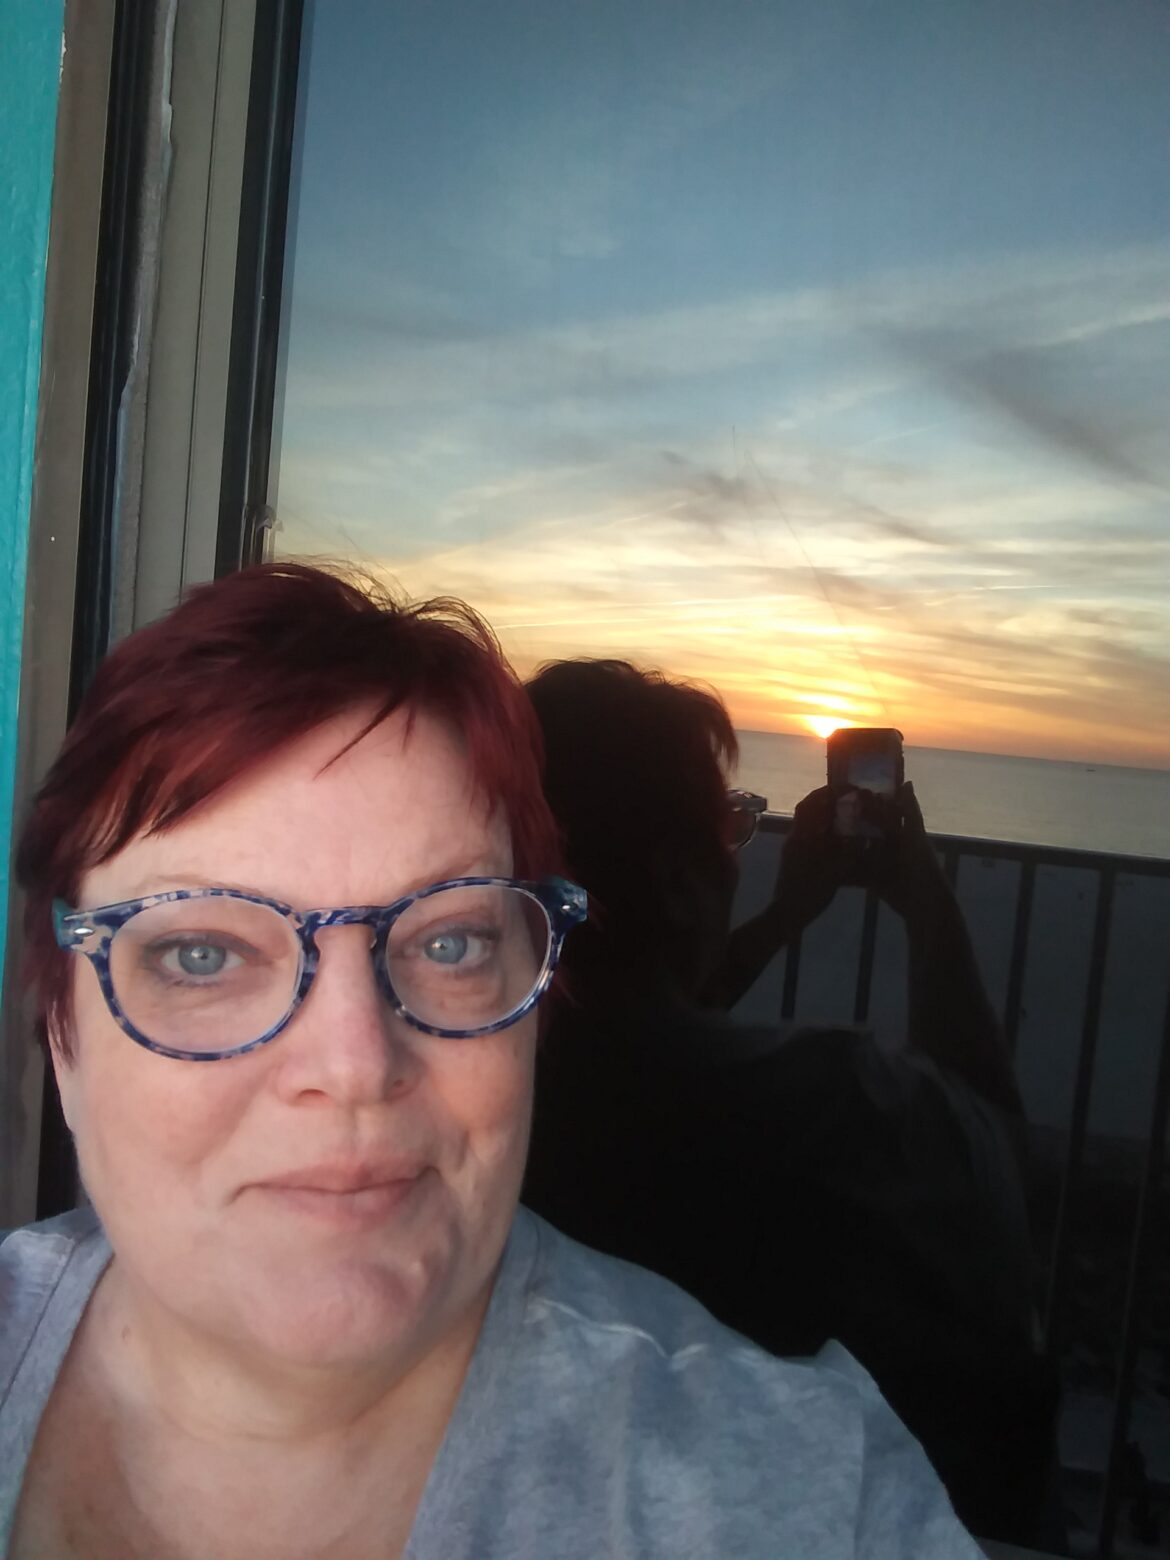 Author and editor Luanne Smith with the reflection of a sunset behind her. She is a white woman with short red hair and round blue-framed glasses.